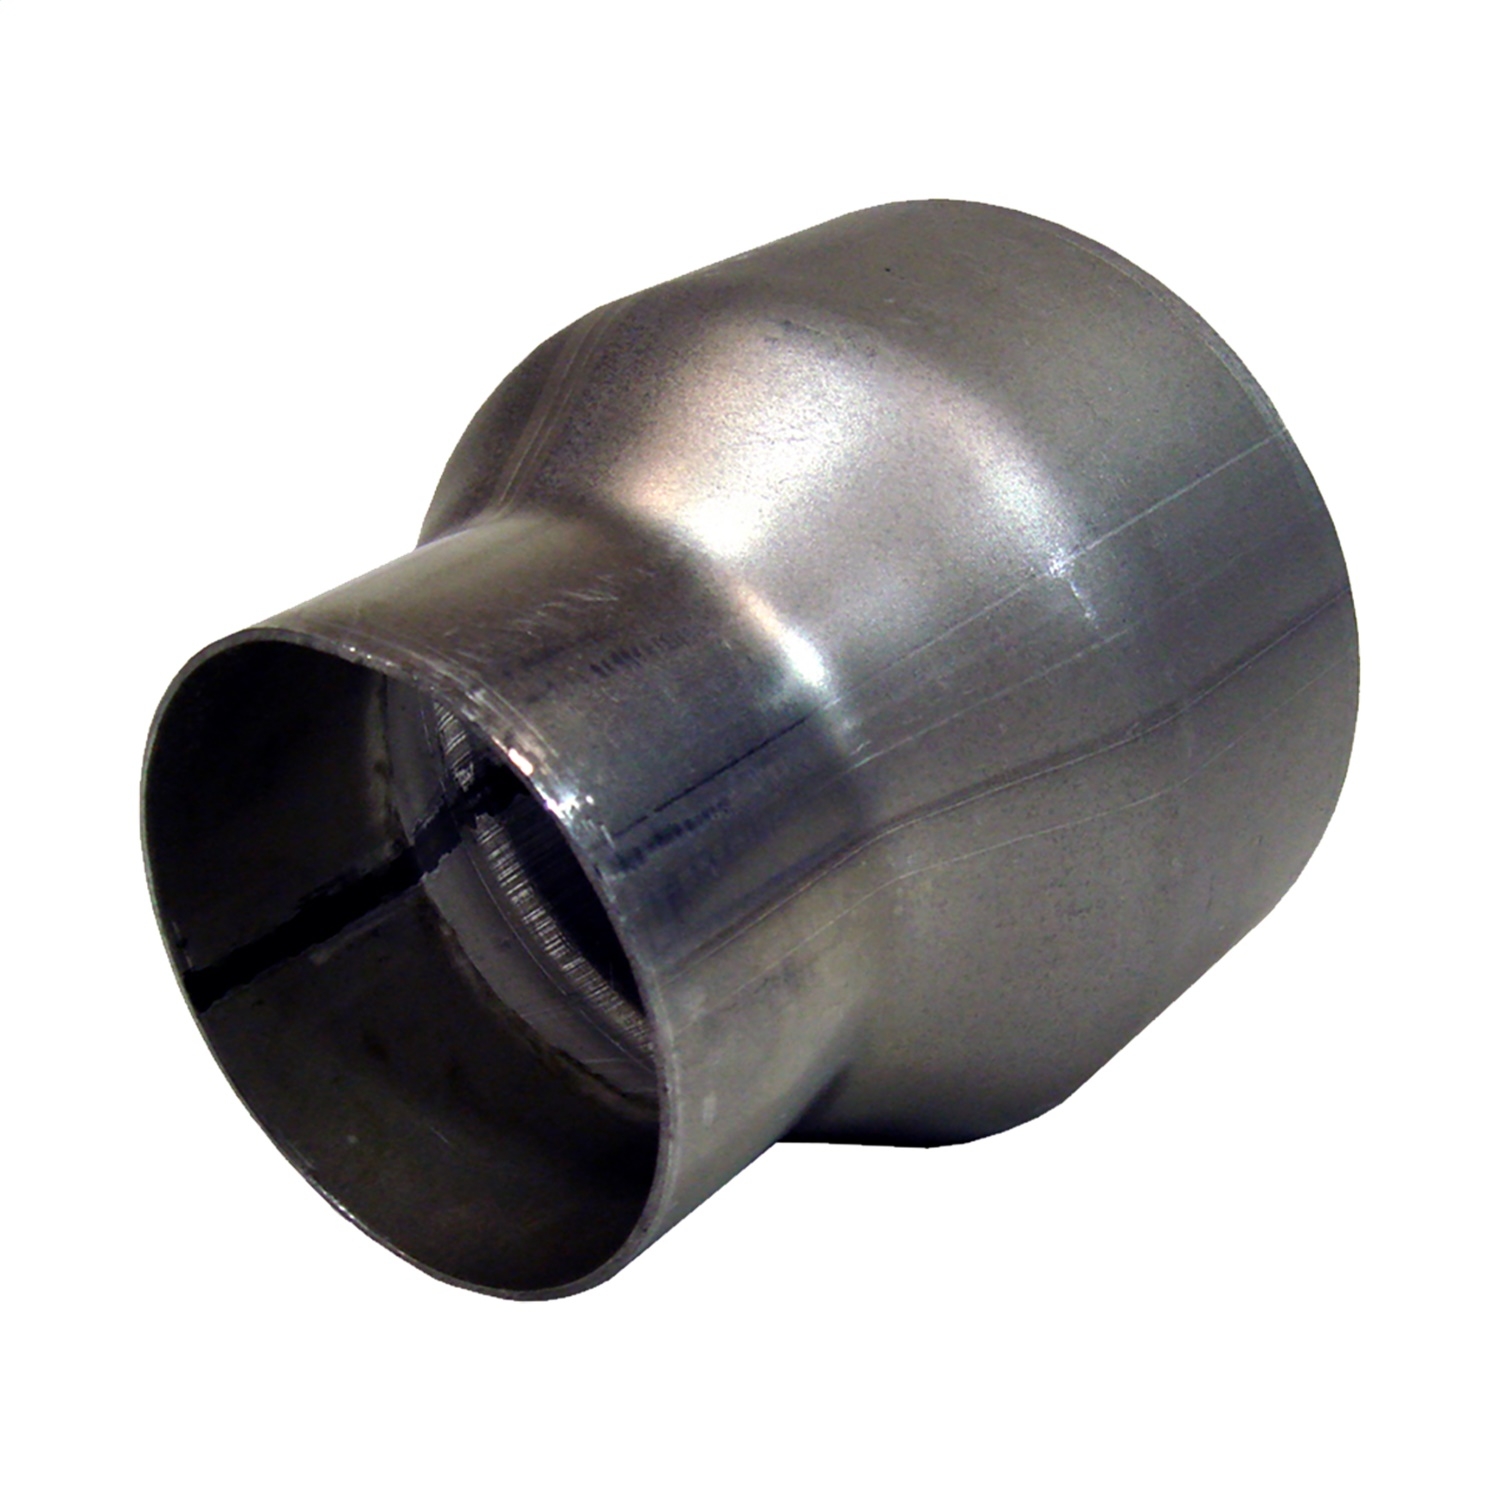 3 inch exhaust pipe adapter - Vent Pipe Adapters and Support